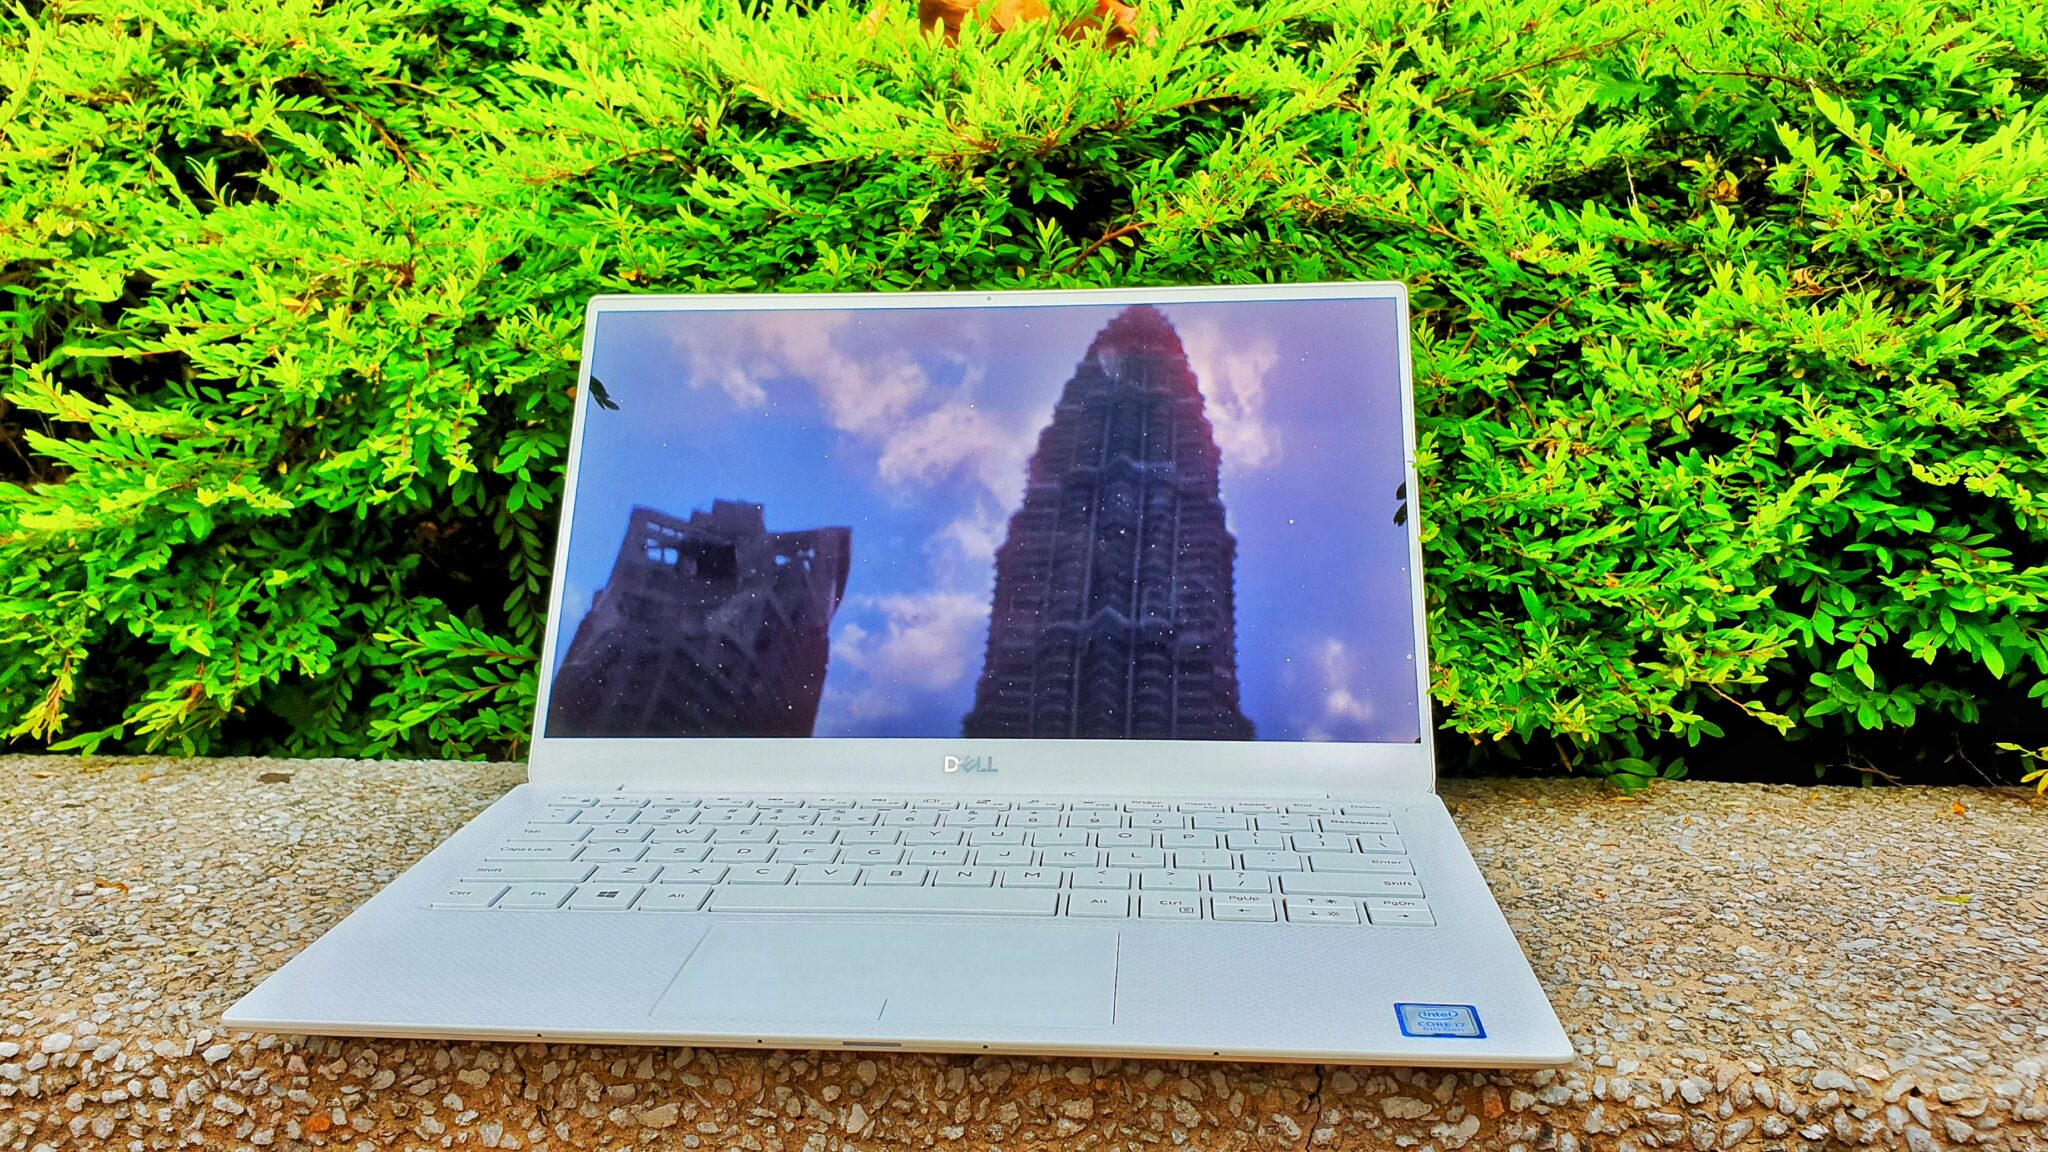 Dell XPS 13 9380 Review – Refined Perfection